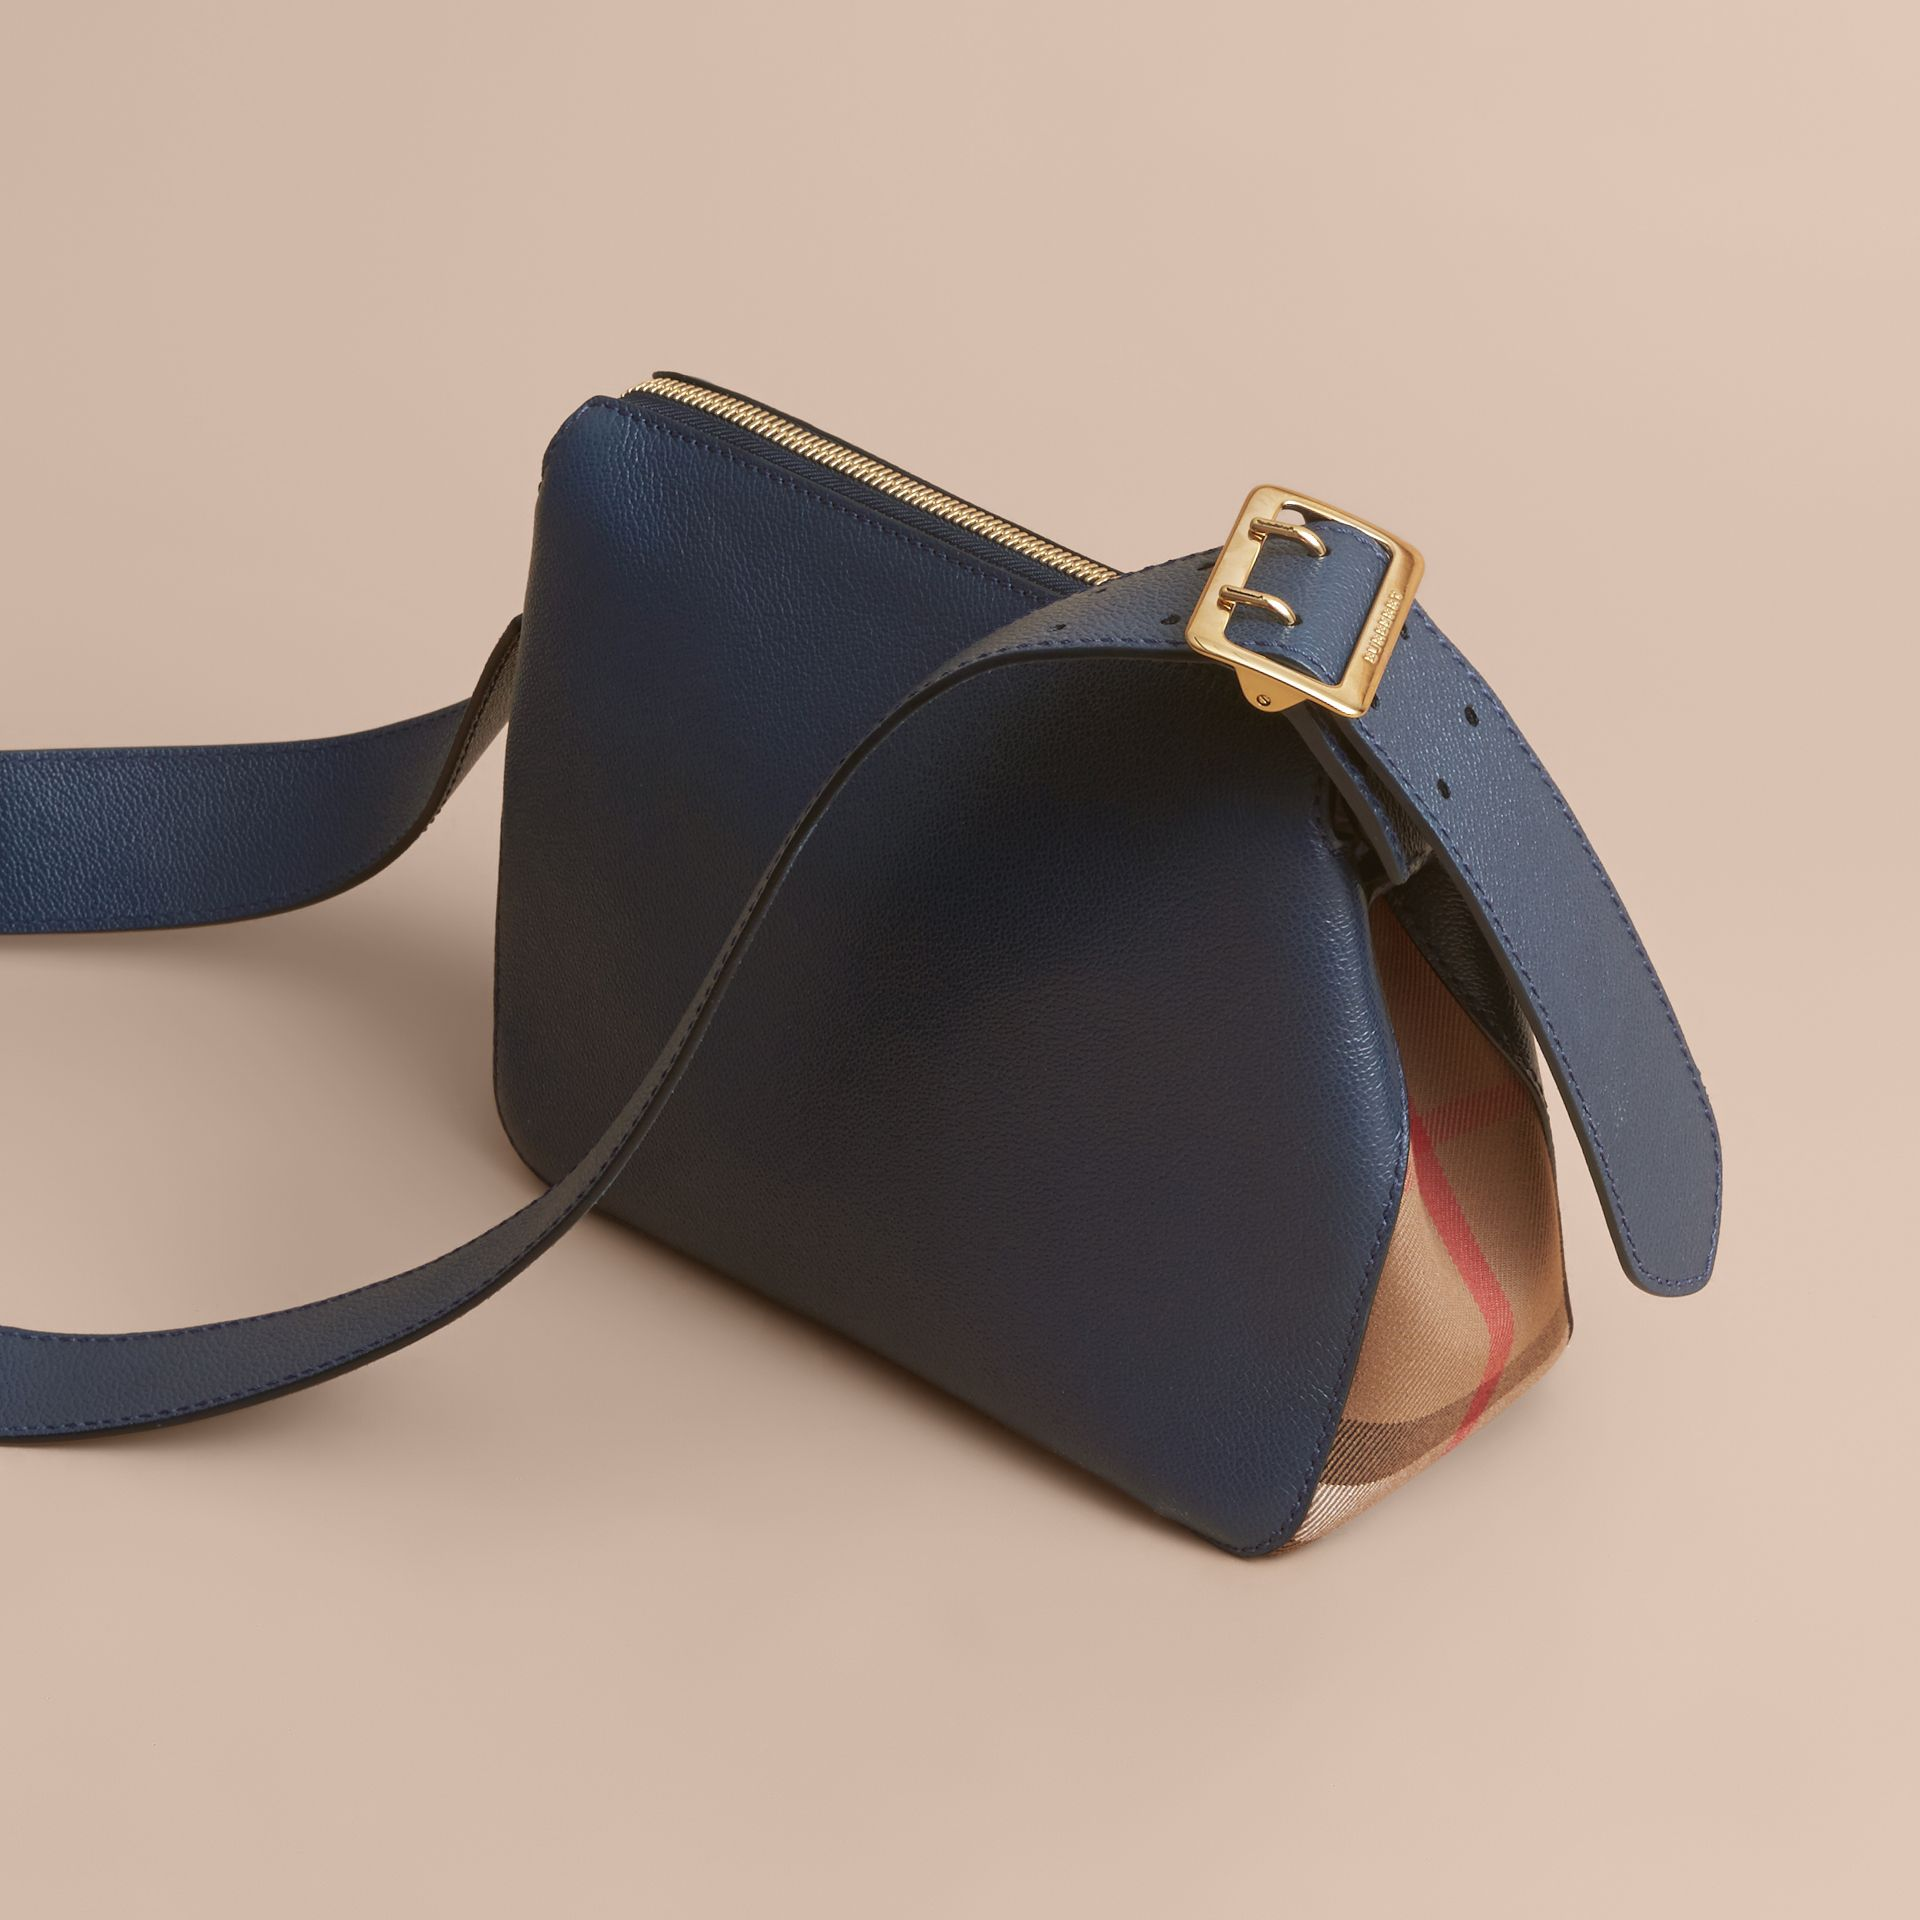 Buckle Detail Leather and House Check Crossbody Bag in Blue Carbon - Women | Burberry - gallery image 4